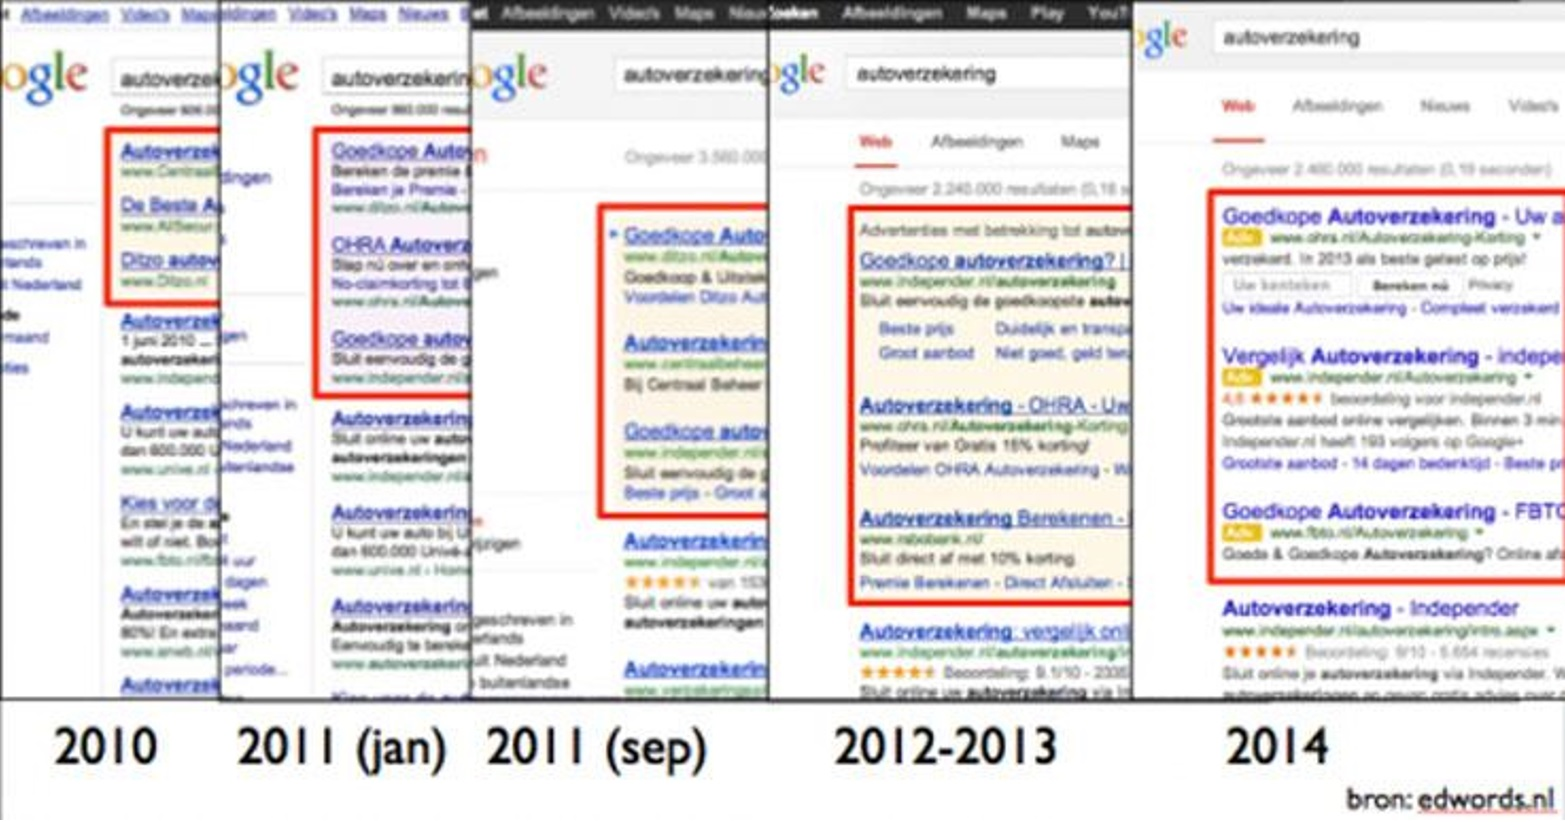 Evolution of Google Ads in the SERPS up to 2014